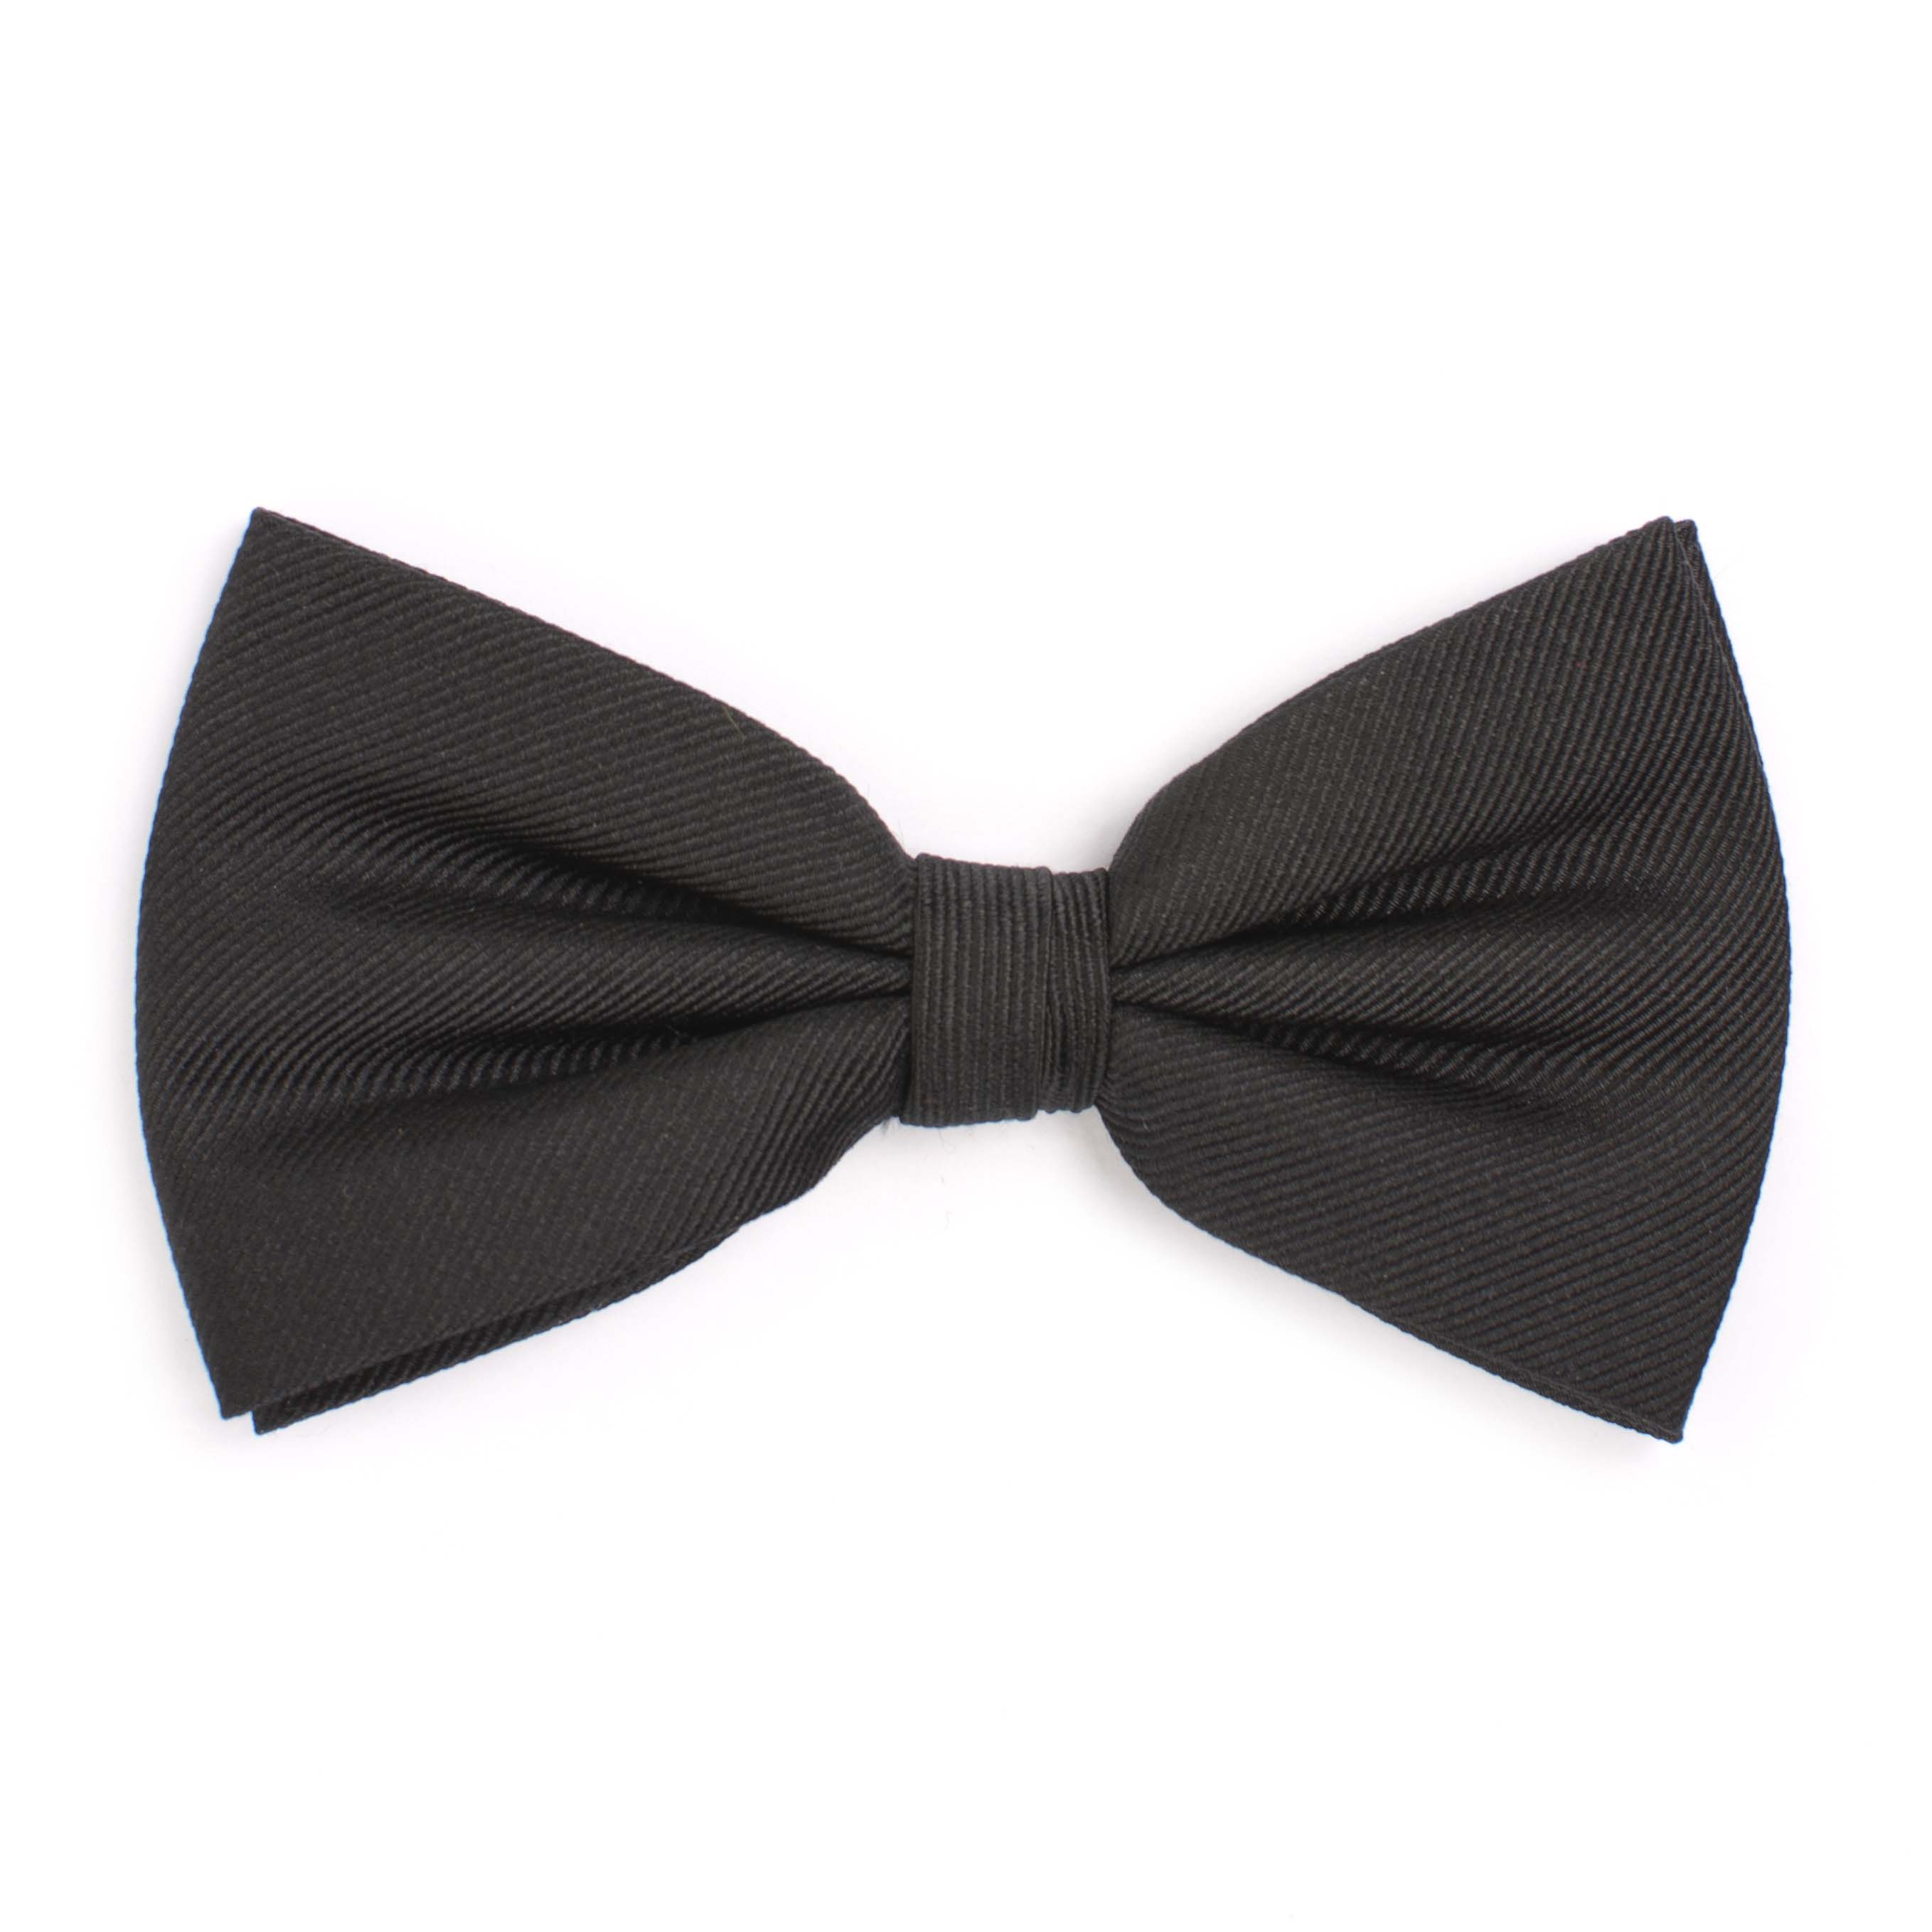 Bow tie classic ribbed black